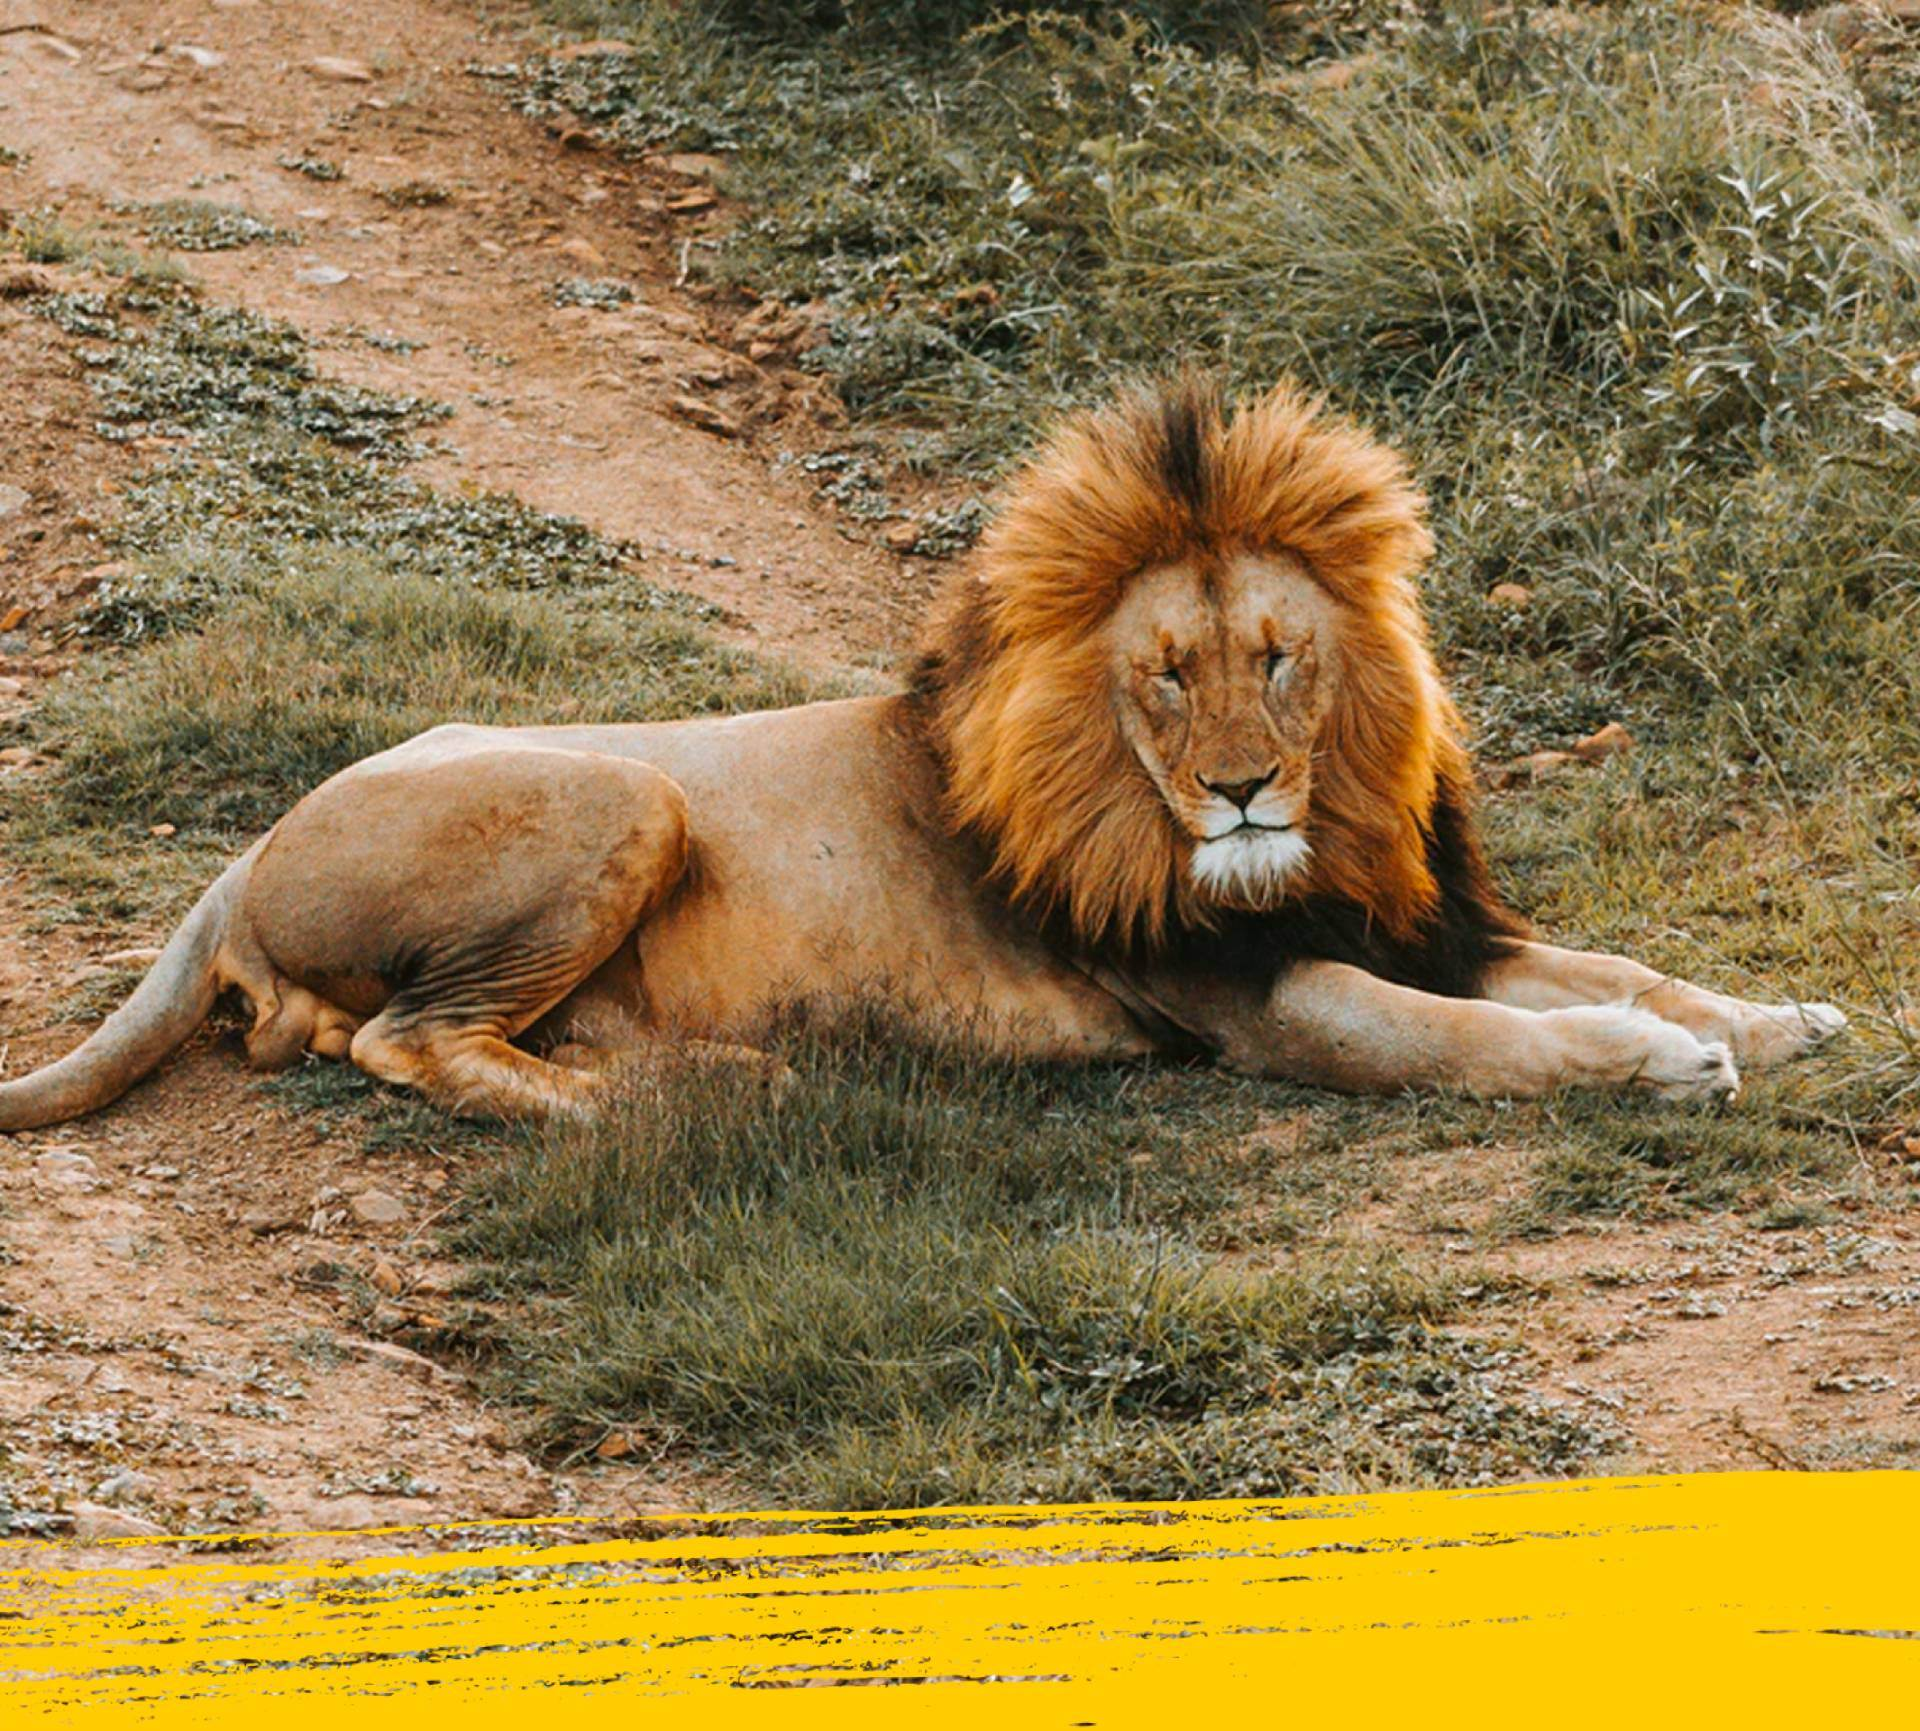 Lion lying down in its habitat